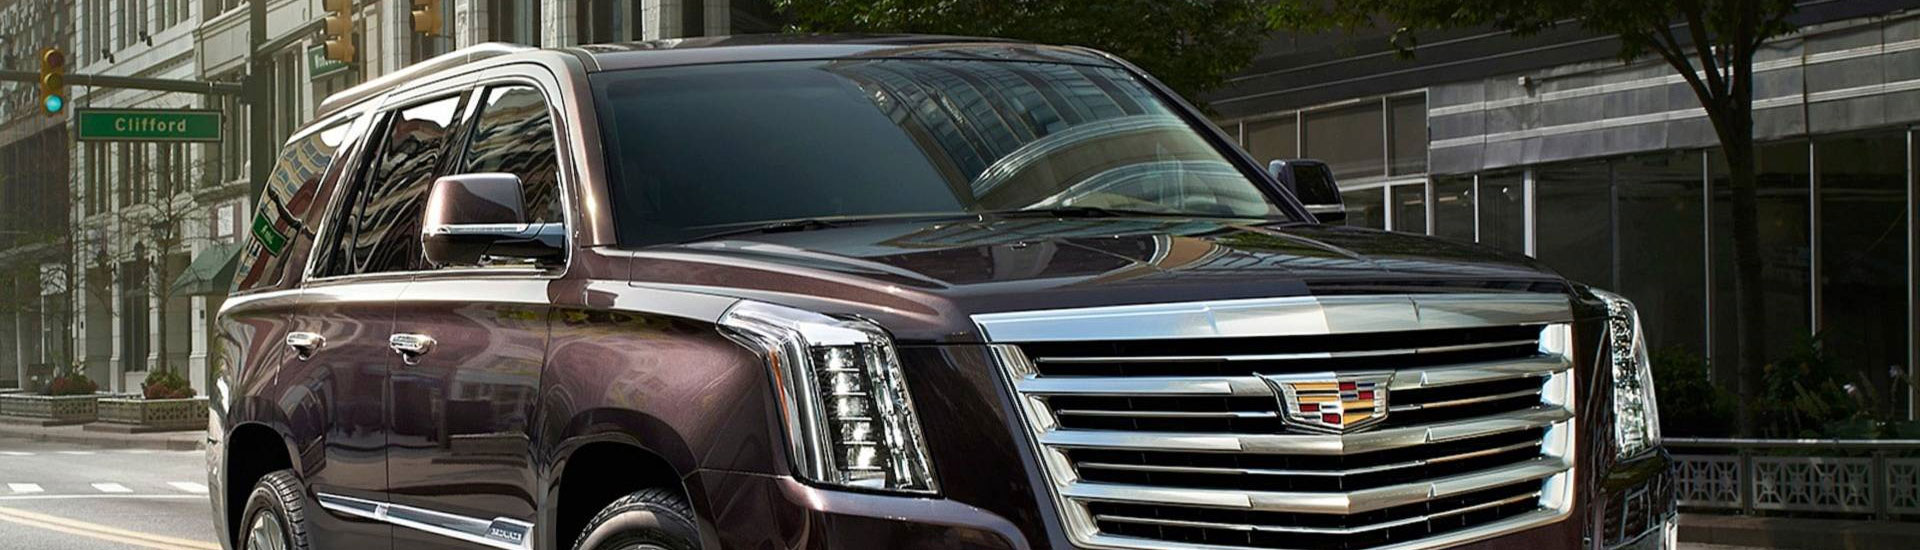 Cadillac Escalade Pillar Post Trim